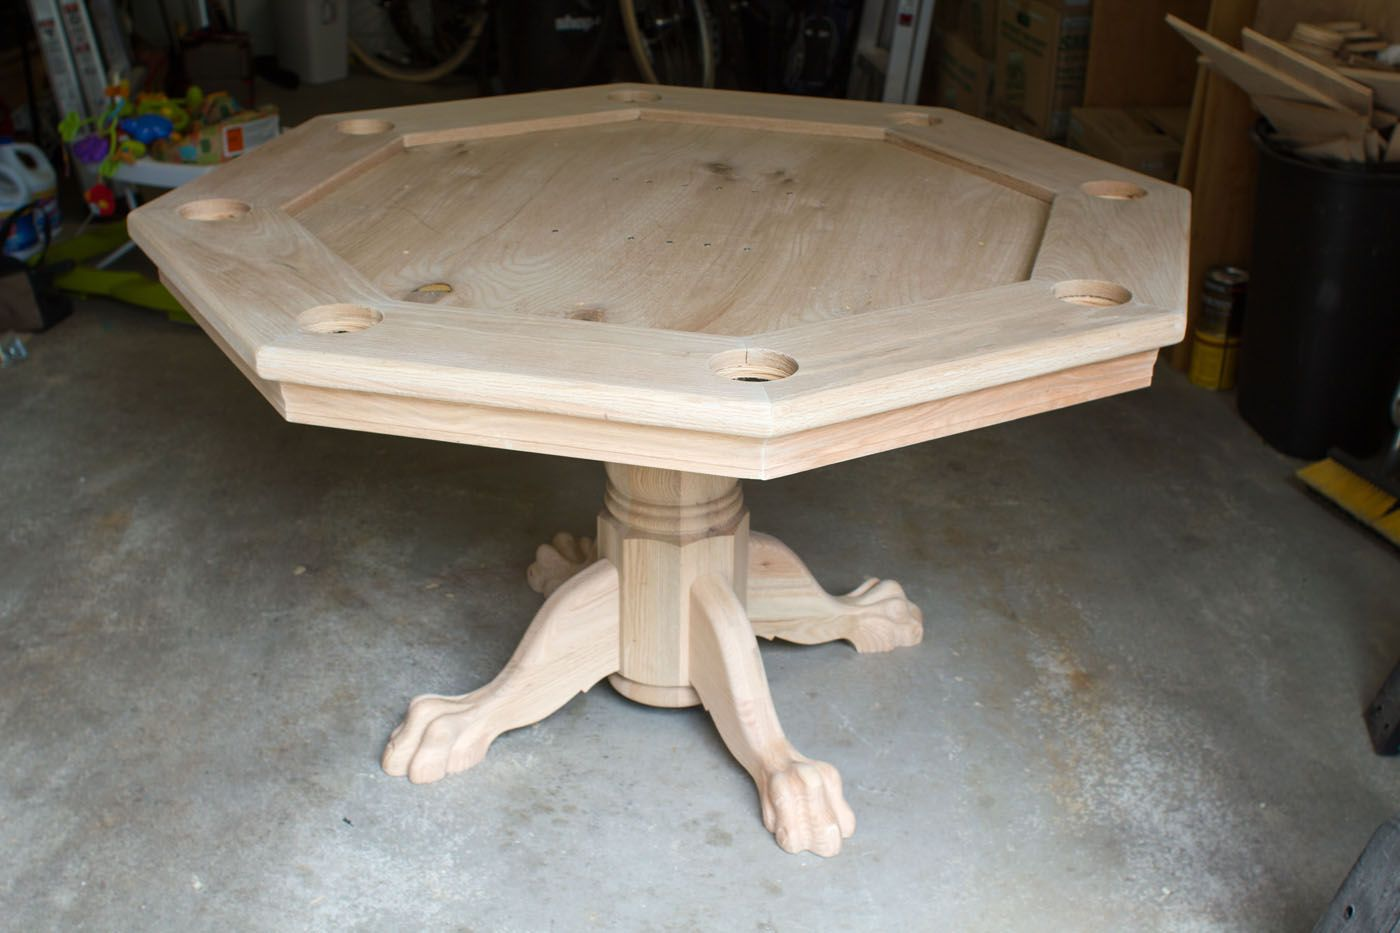 How To Build An Octagon Poker Table | GAME ROOM | Pinterest | Octagon Poker  Table, Poker Table And Poker